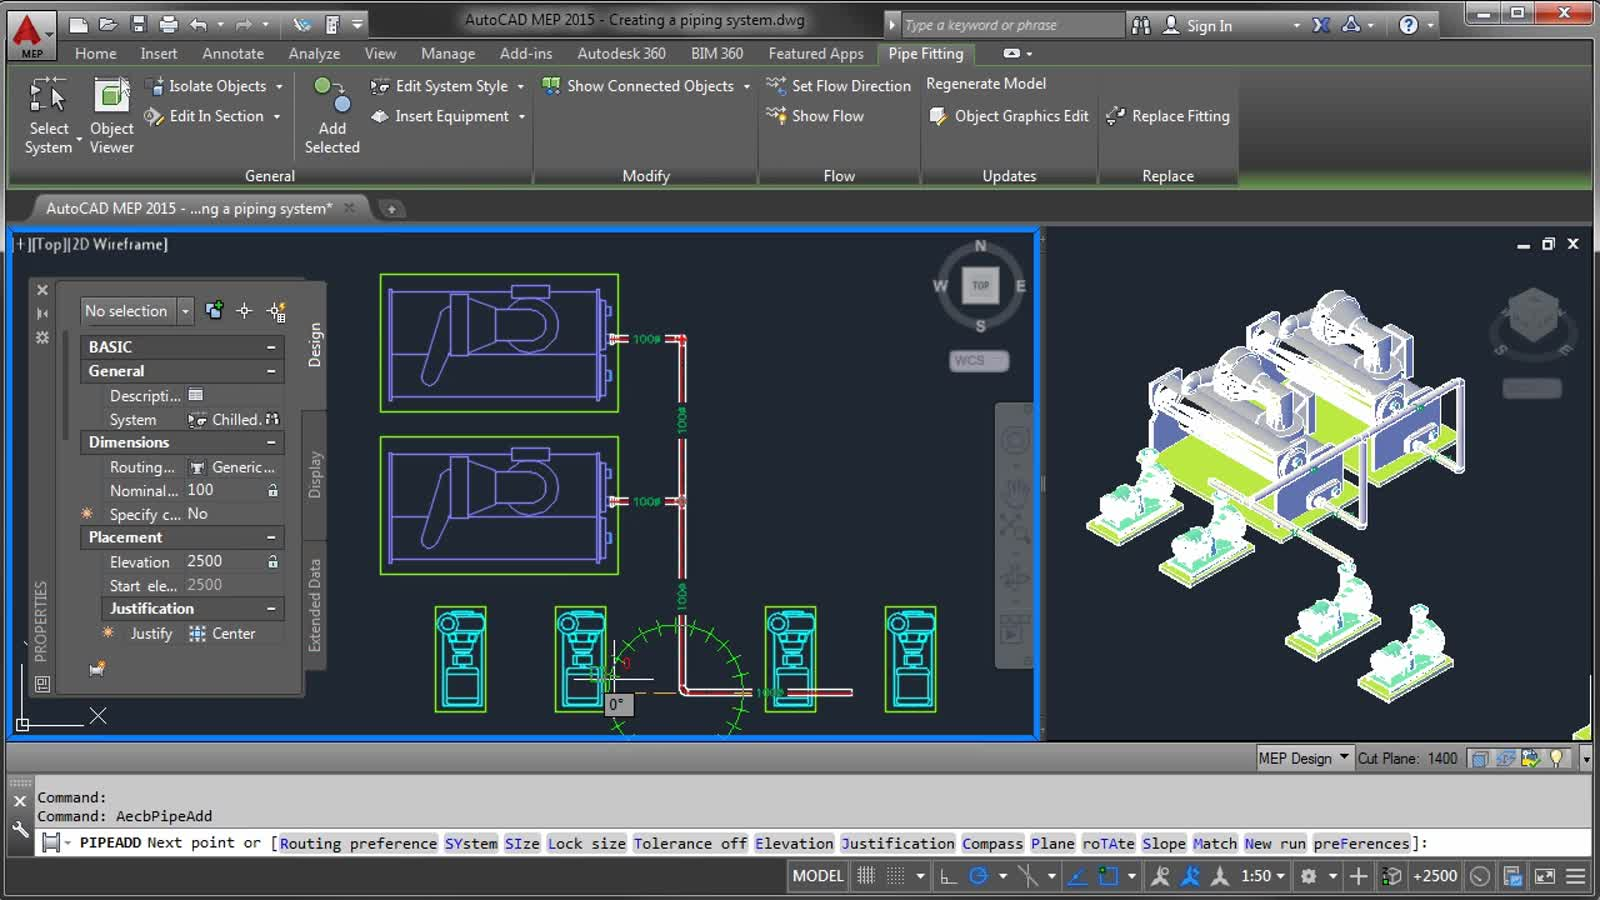 hight resolution of autocad mep creating a piping system autocad mep autodeskautocad mep creating a piping system autocad mep